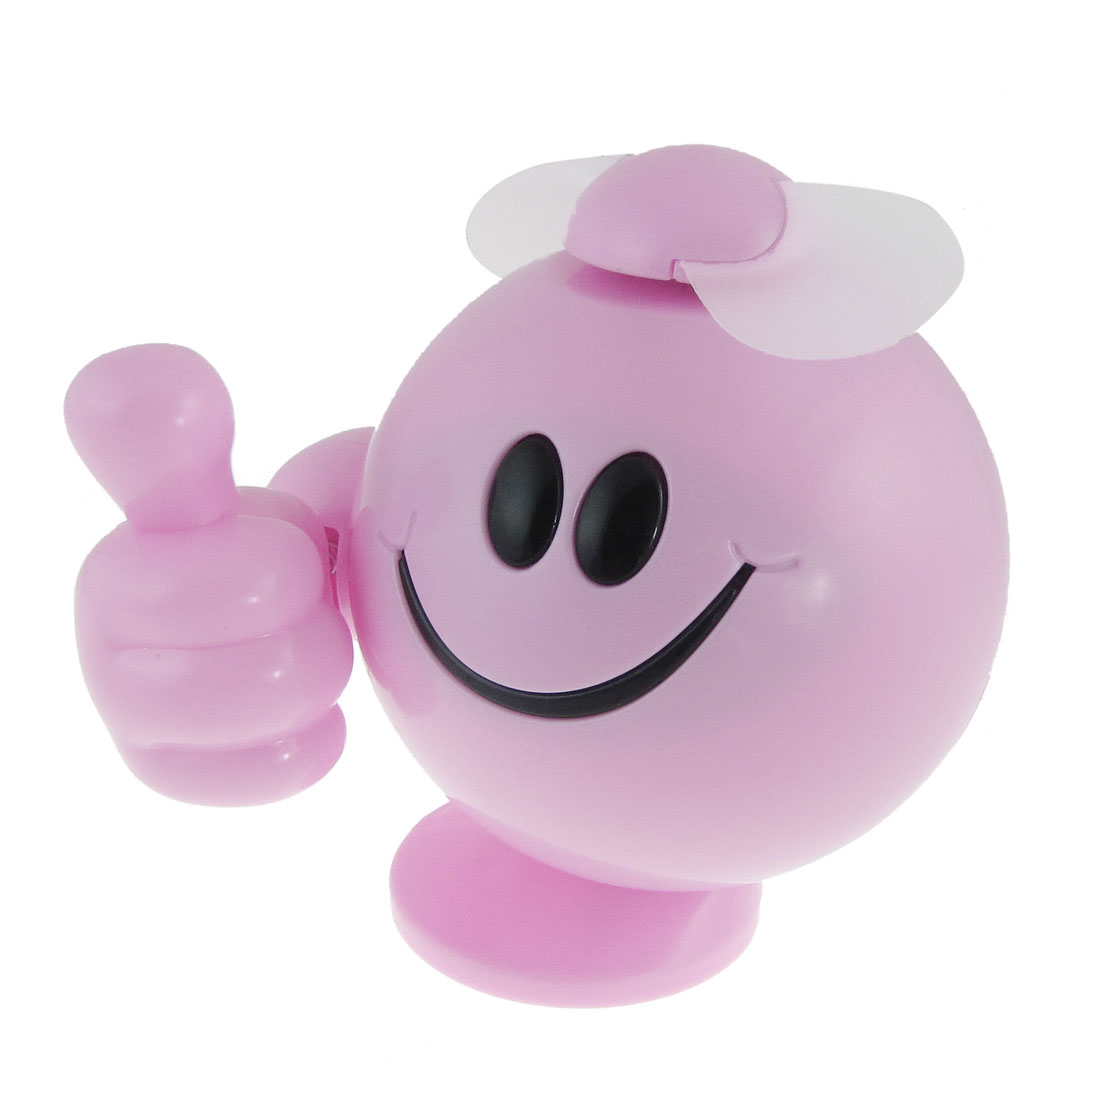 Cartoon Thumb Figure 2 AAA Battery Operated Mini Fan Pink